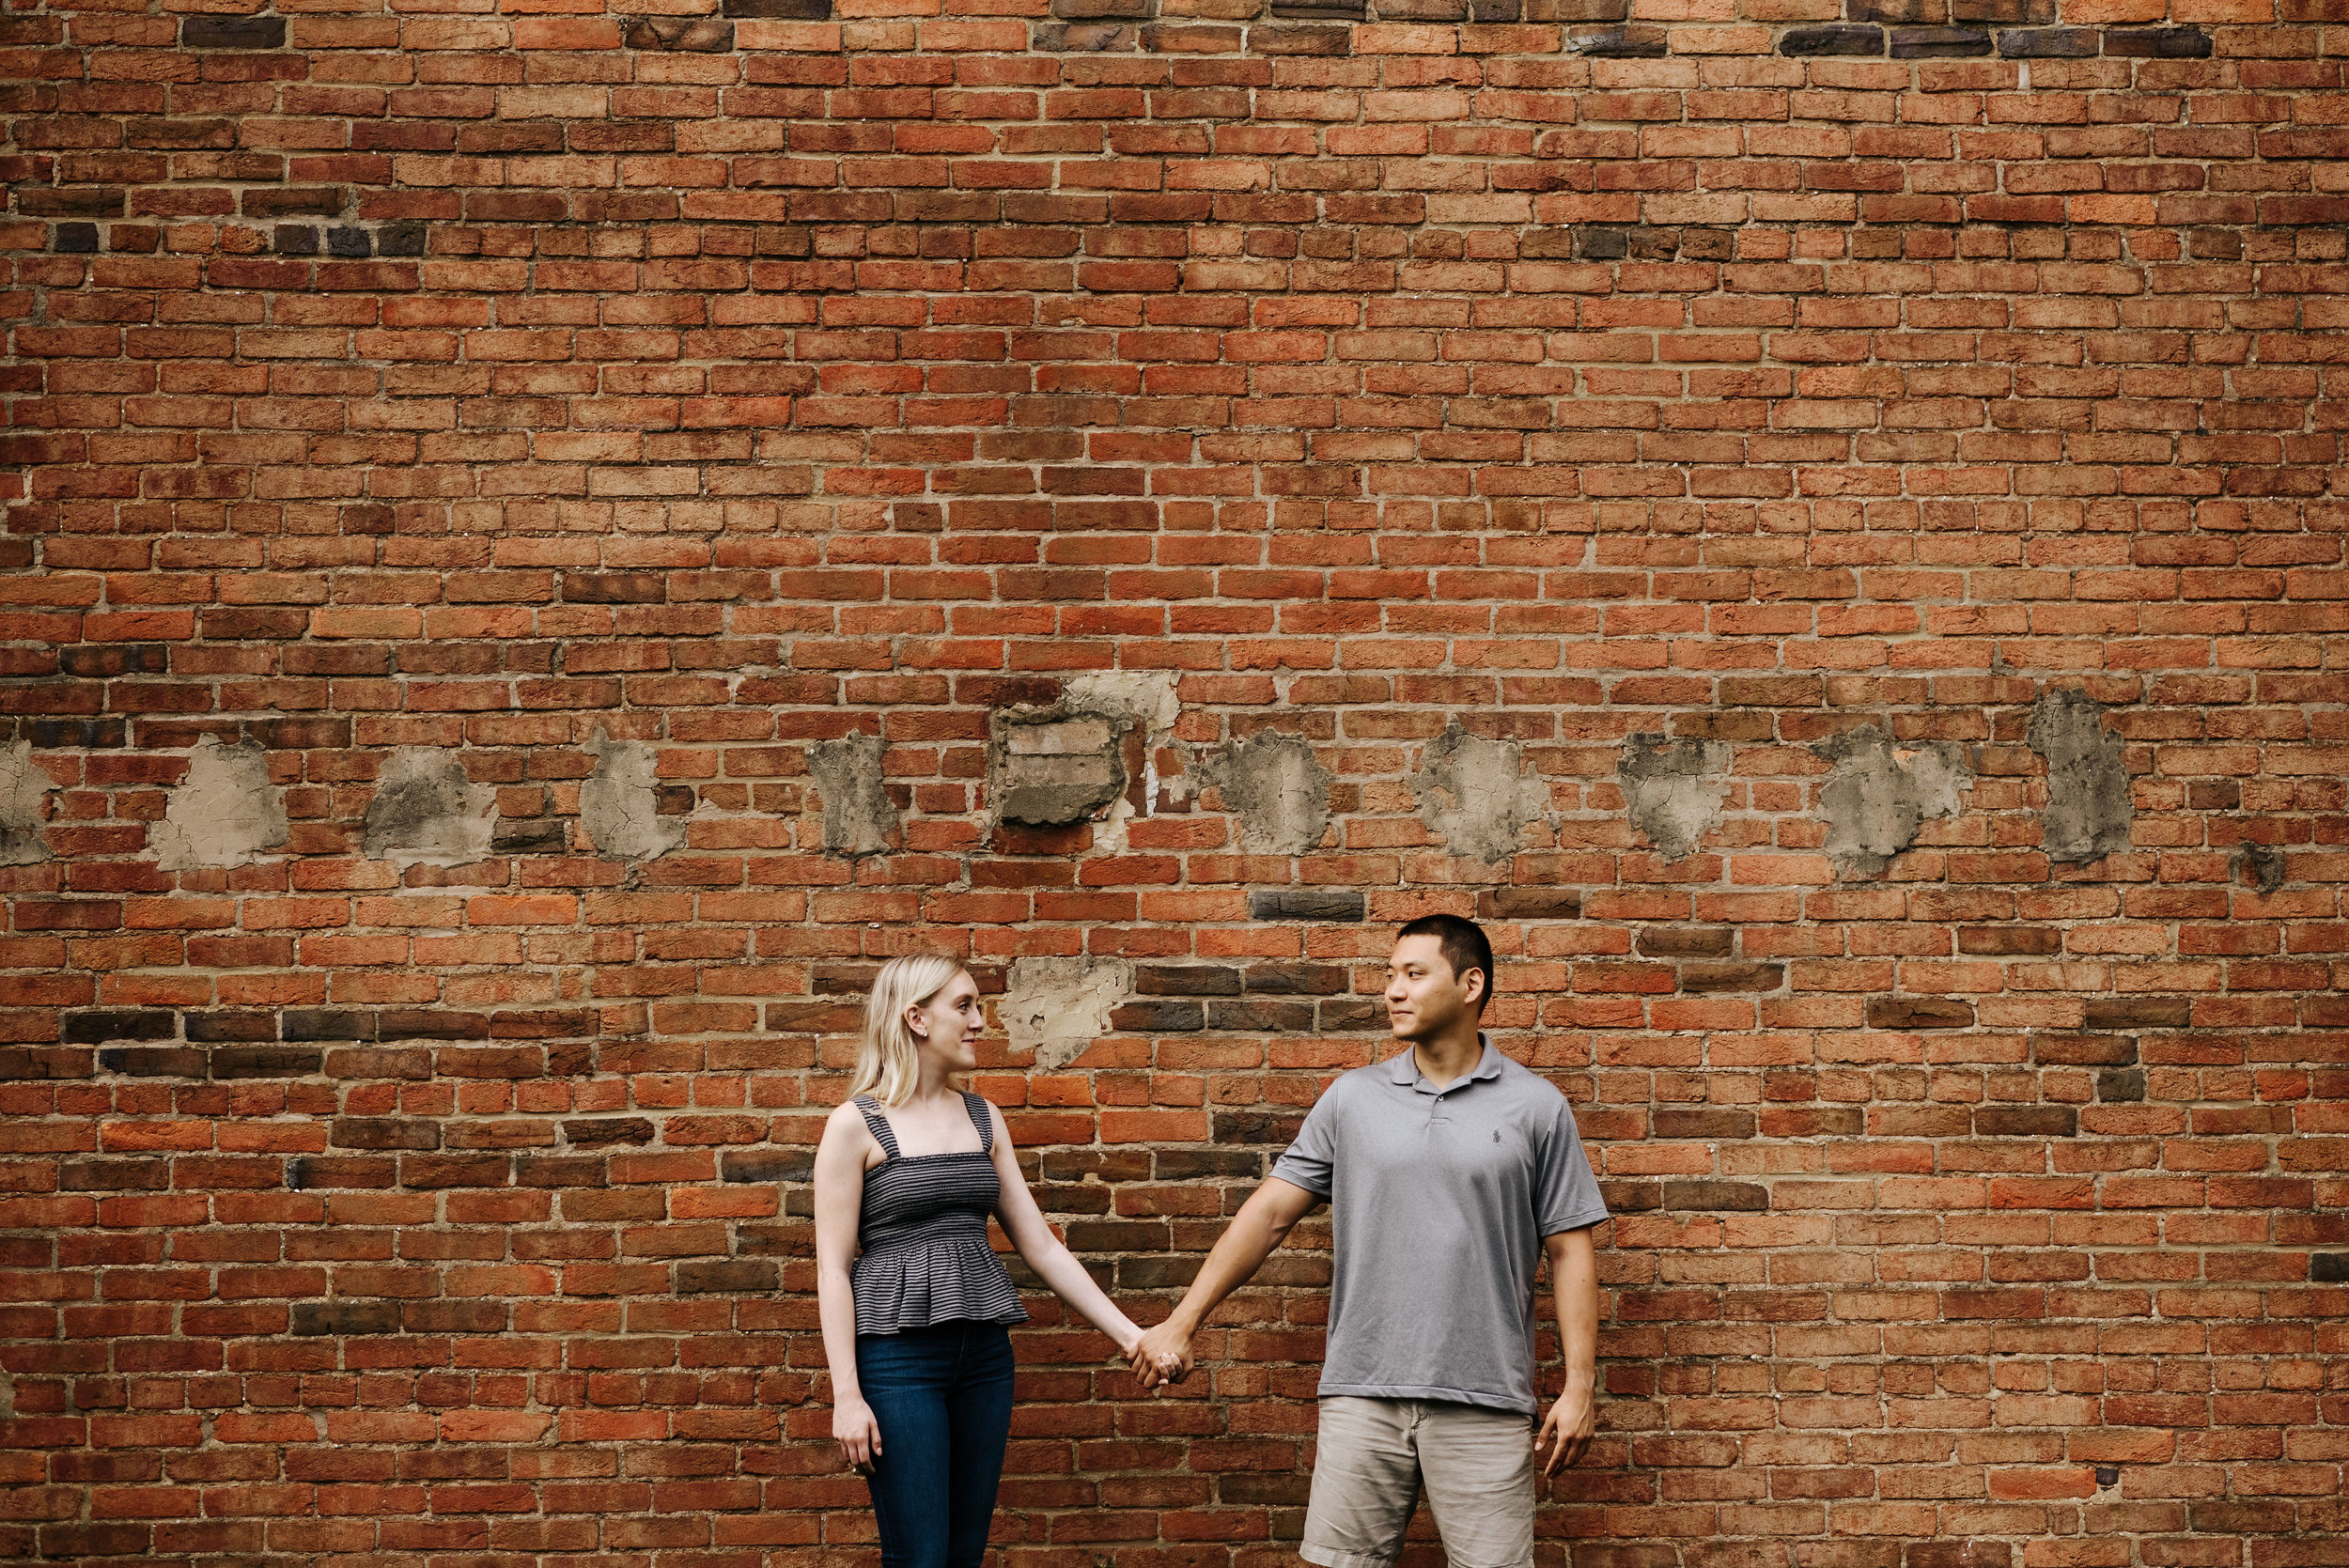 Bella_Alec_Old_Town_Alexandria_Engagement_Session_Photography_by_V_5829.jpg